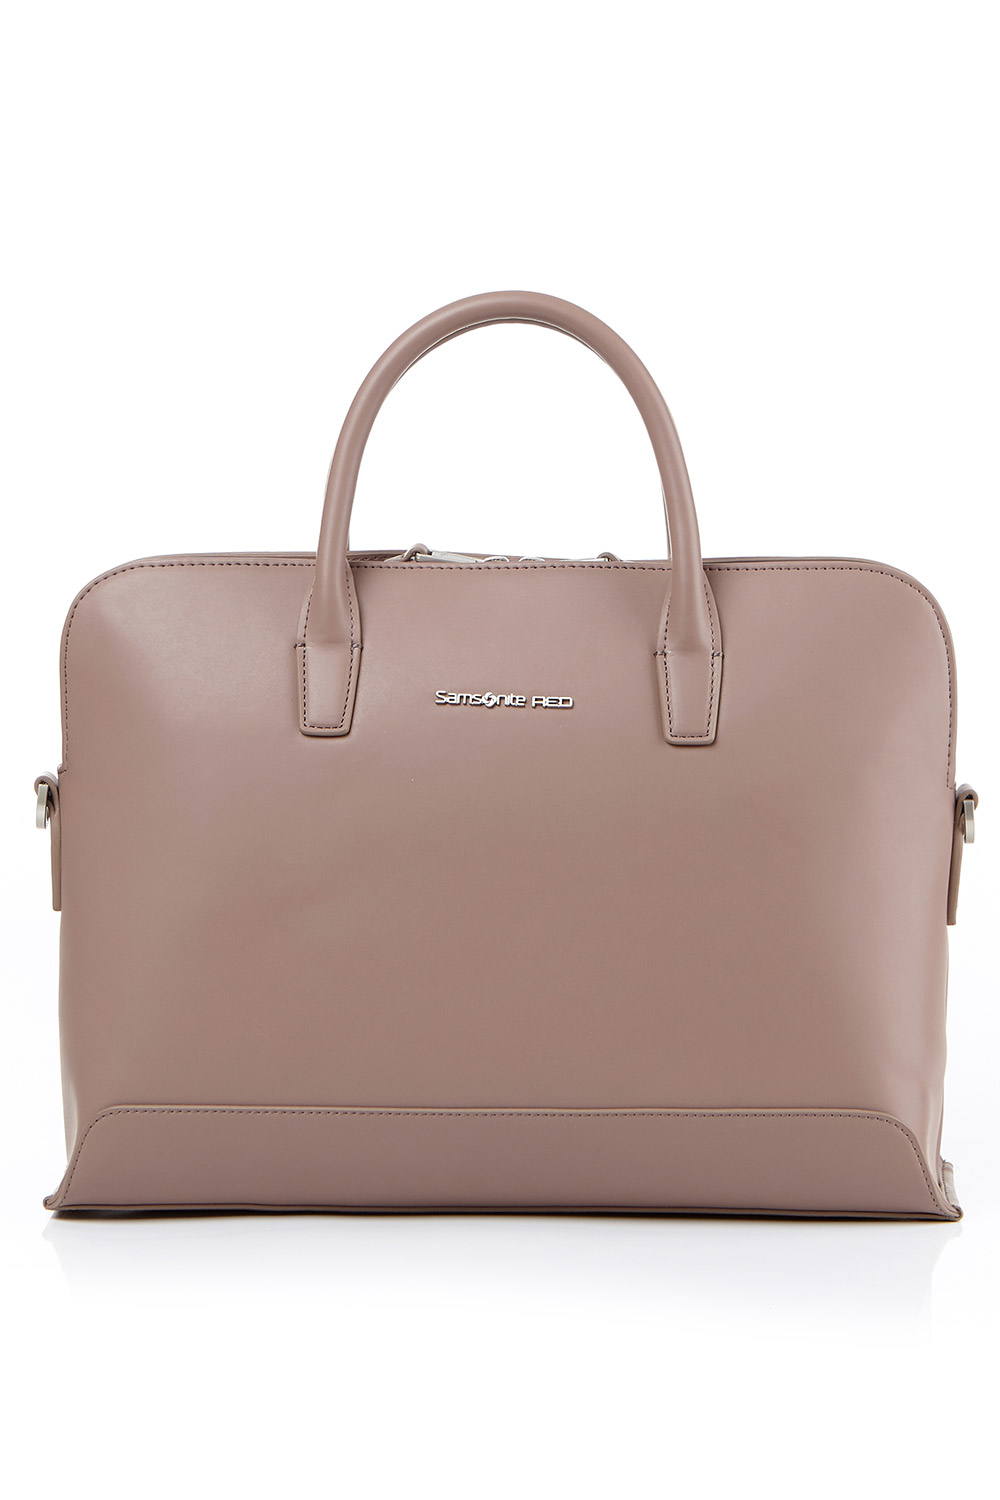 Samsonite RED Eleanorh 公事包